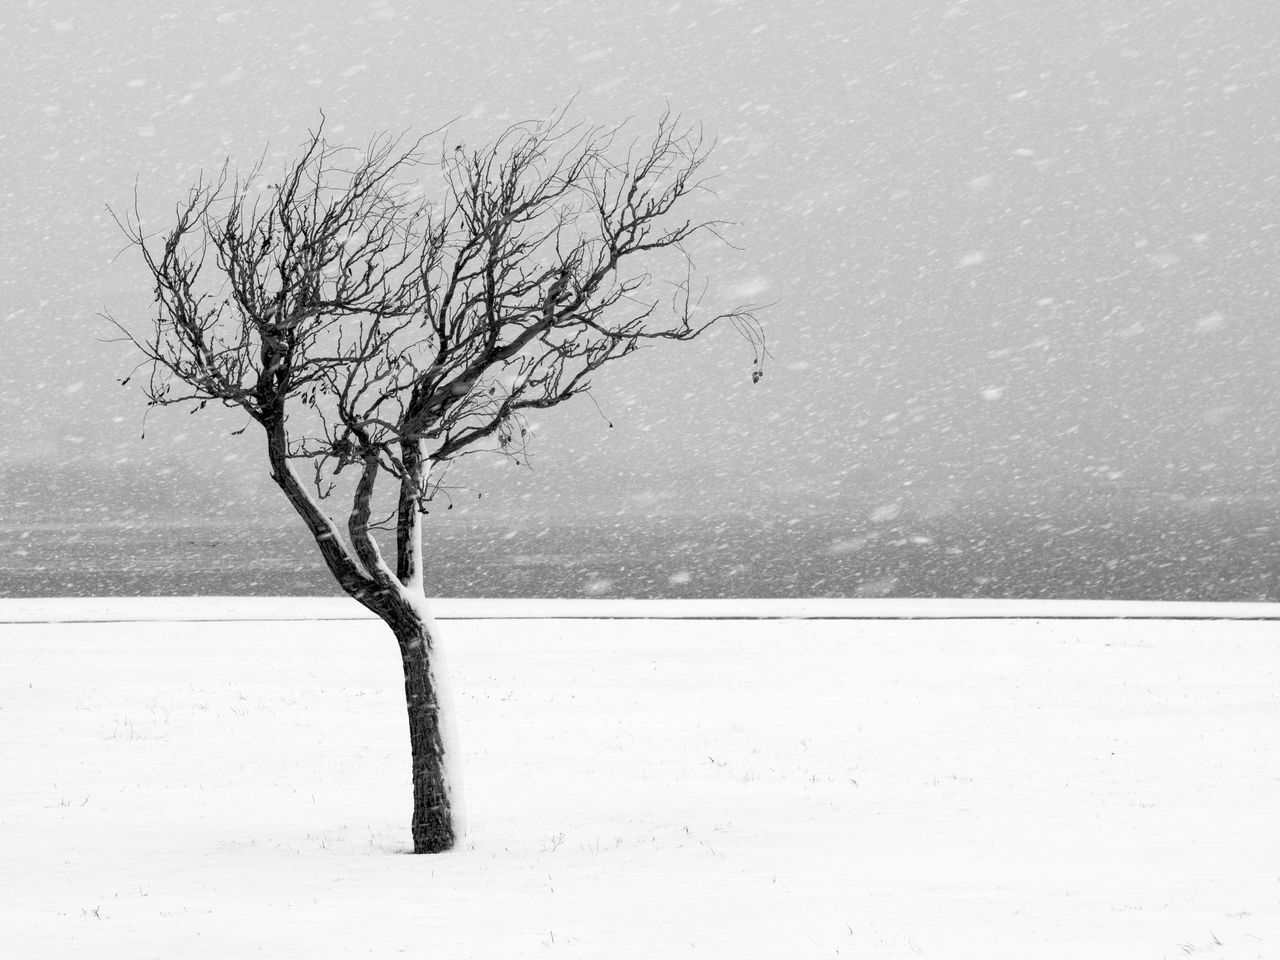 Bare Tree On Snow Covered Landscape During Storm